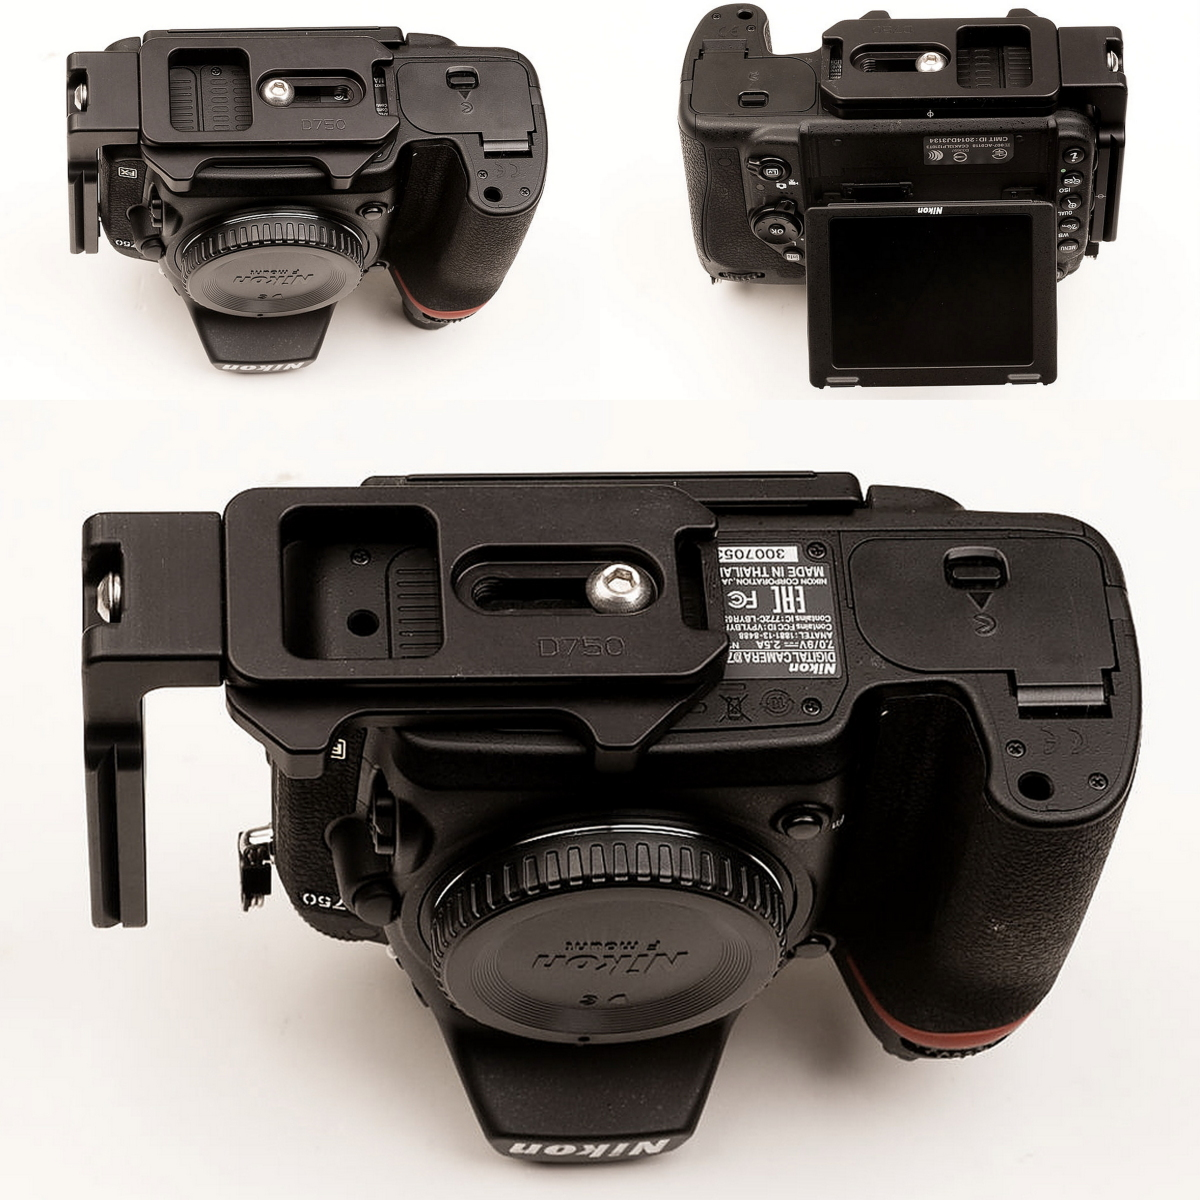 Hejnar PHOTO ND750 L bracket on Nikon D750 bottom views